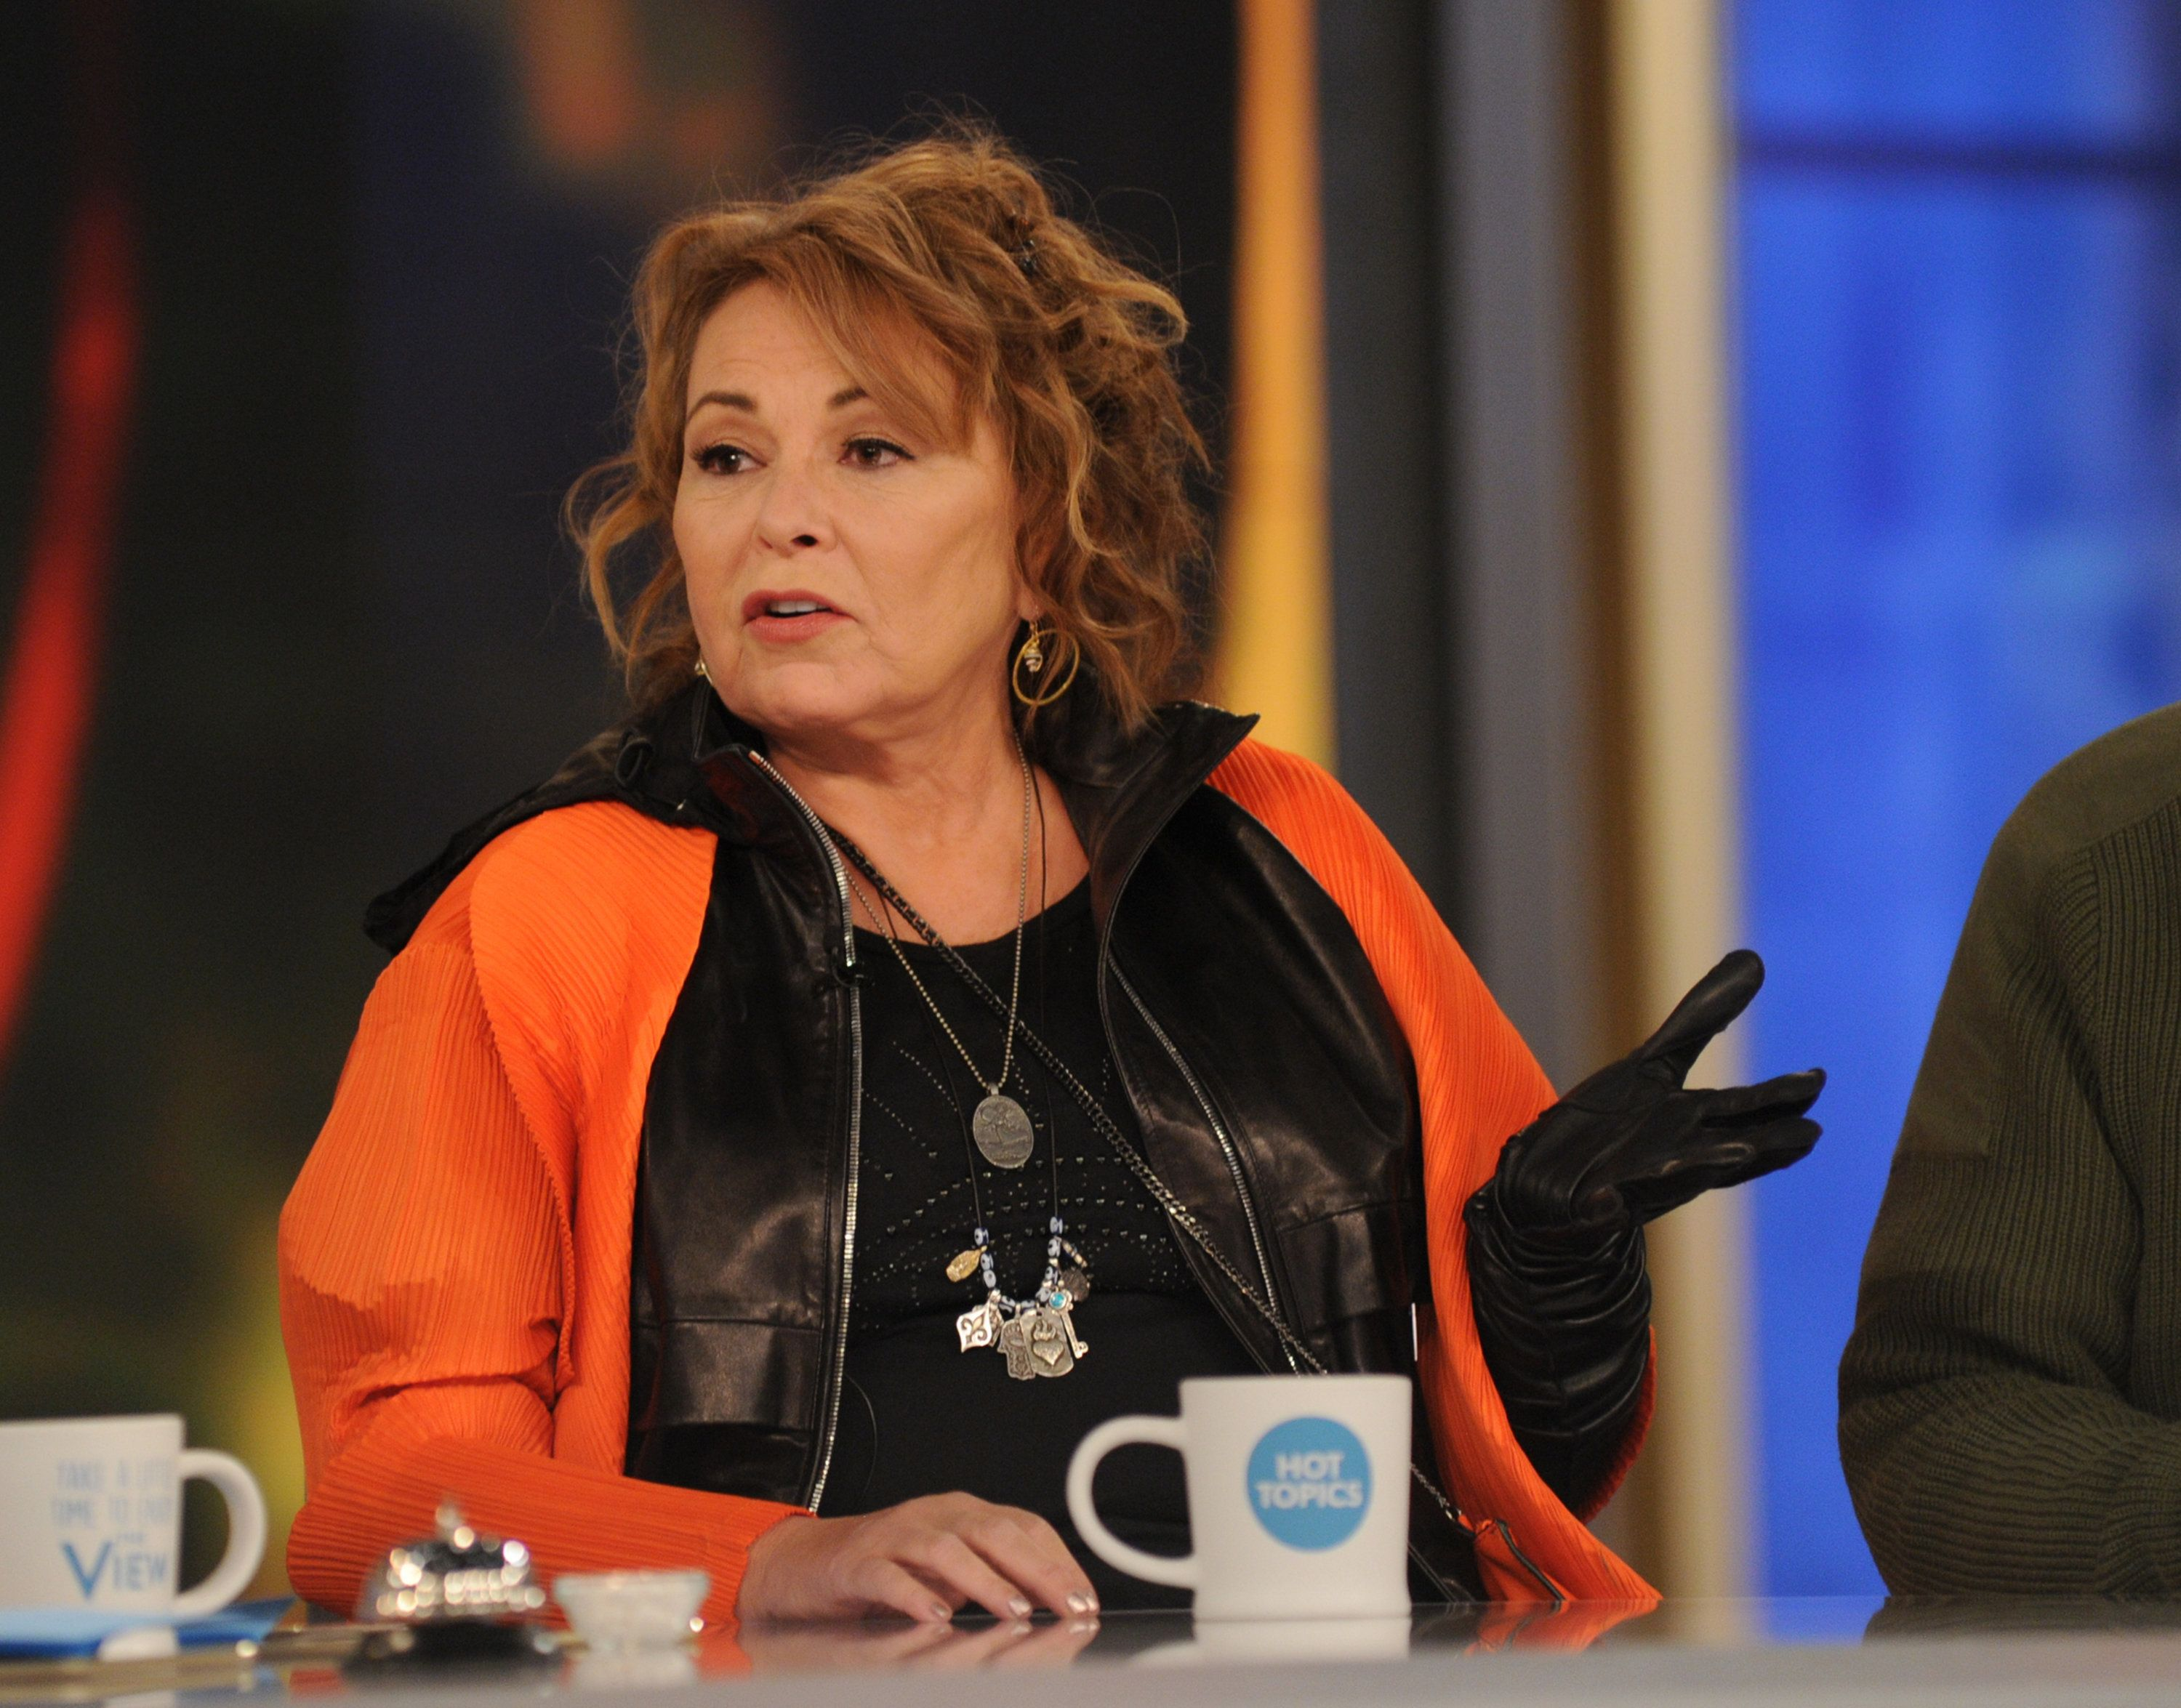 THE VIEW - The cast of Roseanne appear on ABC's 'The View' today, Tuesday, 3/27/18.   'The View' airs Monday-Friday (11:00 am-12:00 pm, ET) on the ABC Television Network.     (Photo by Paula Lobo/ABC via Getty Images)  ROSEANNE BARR